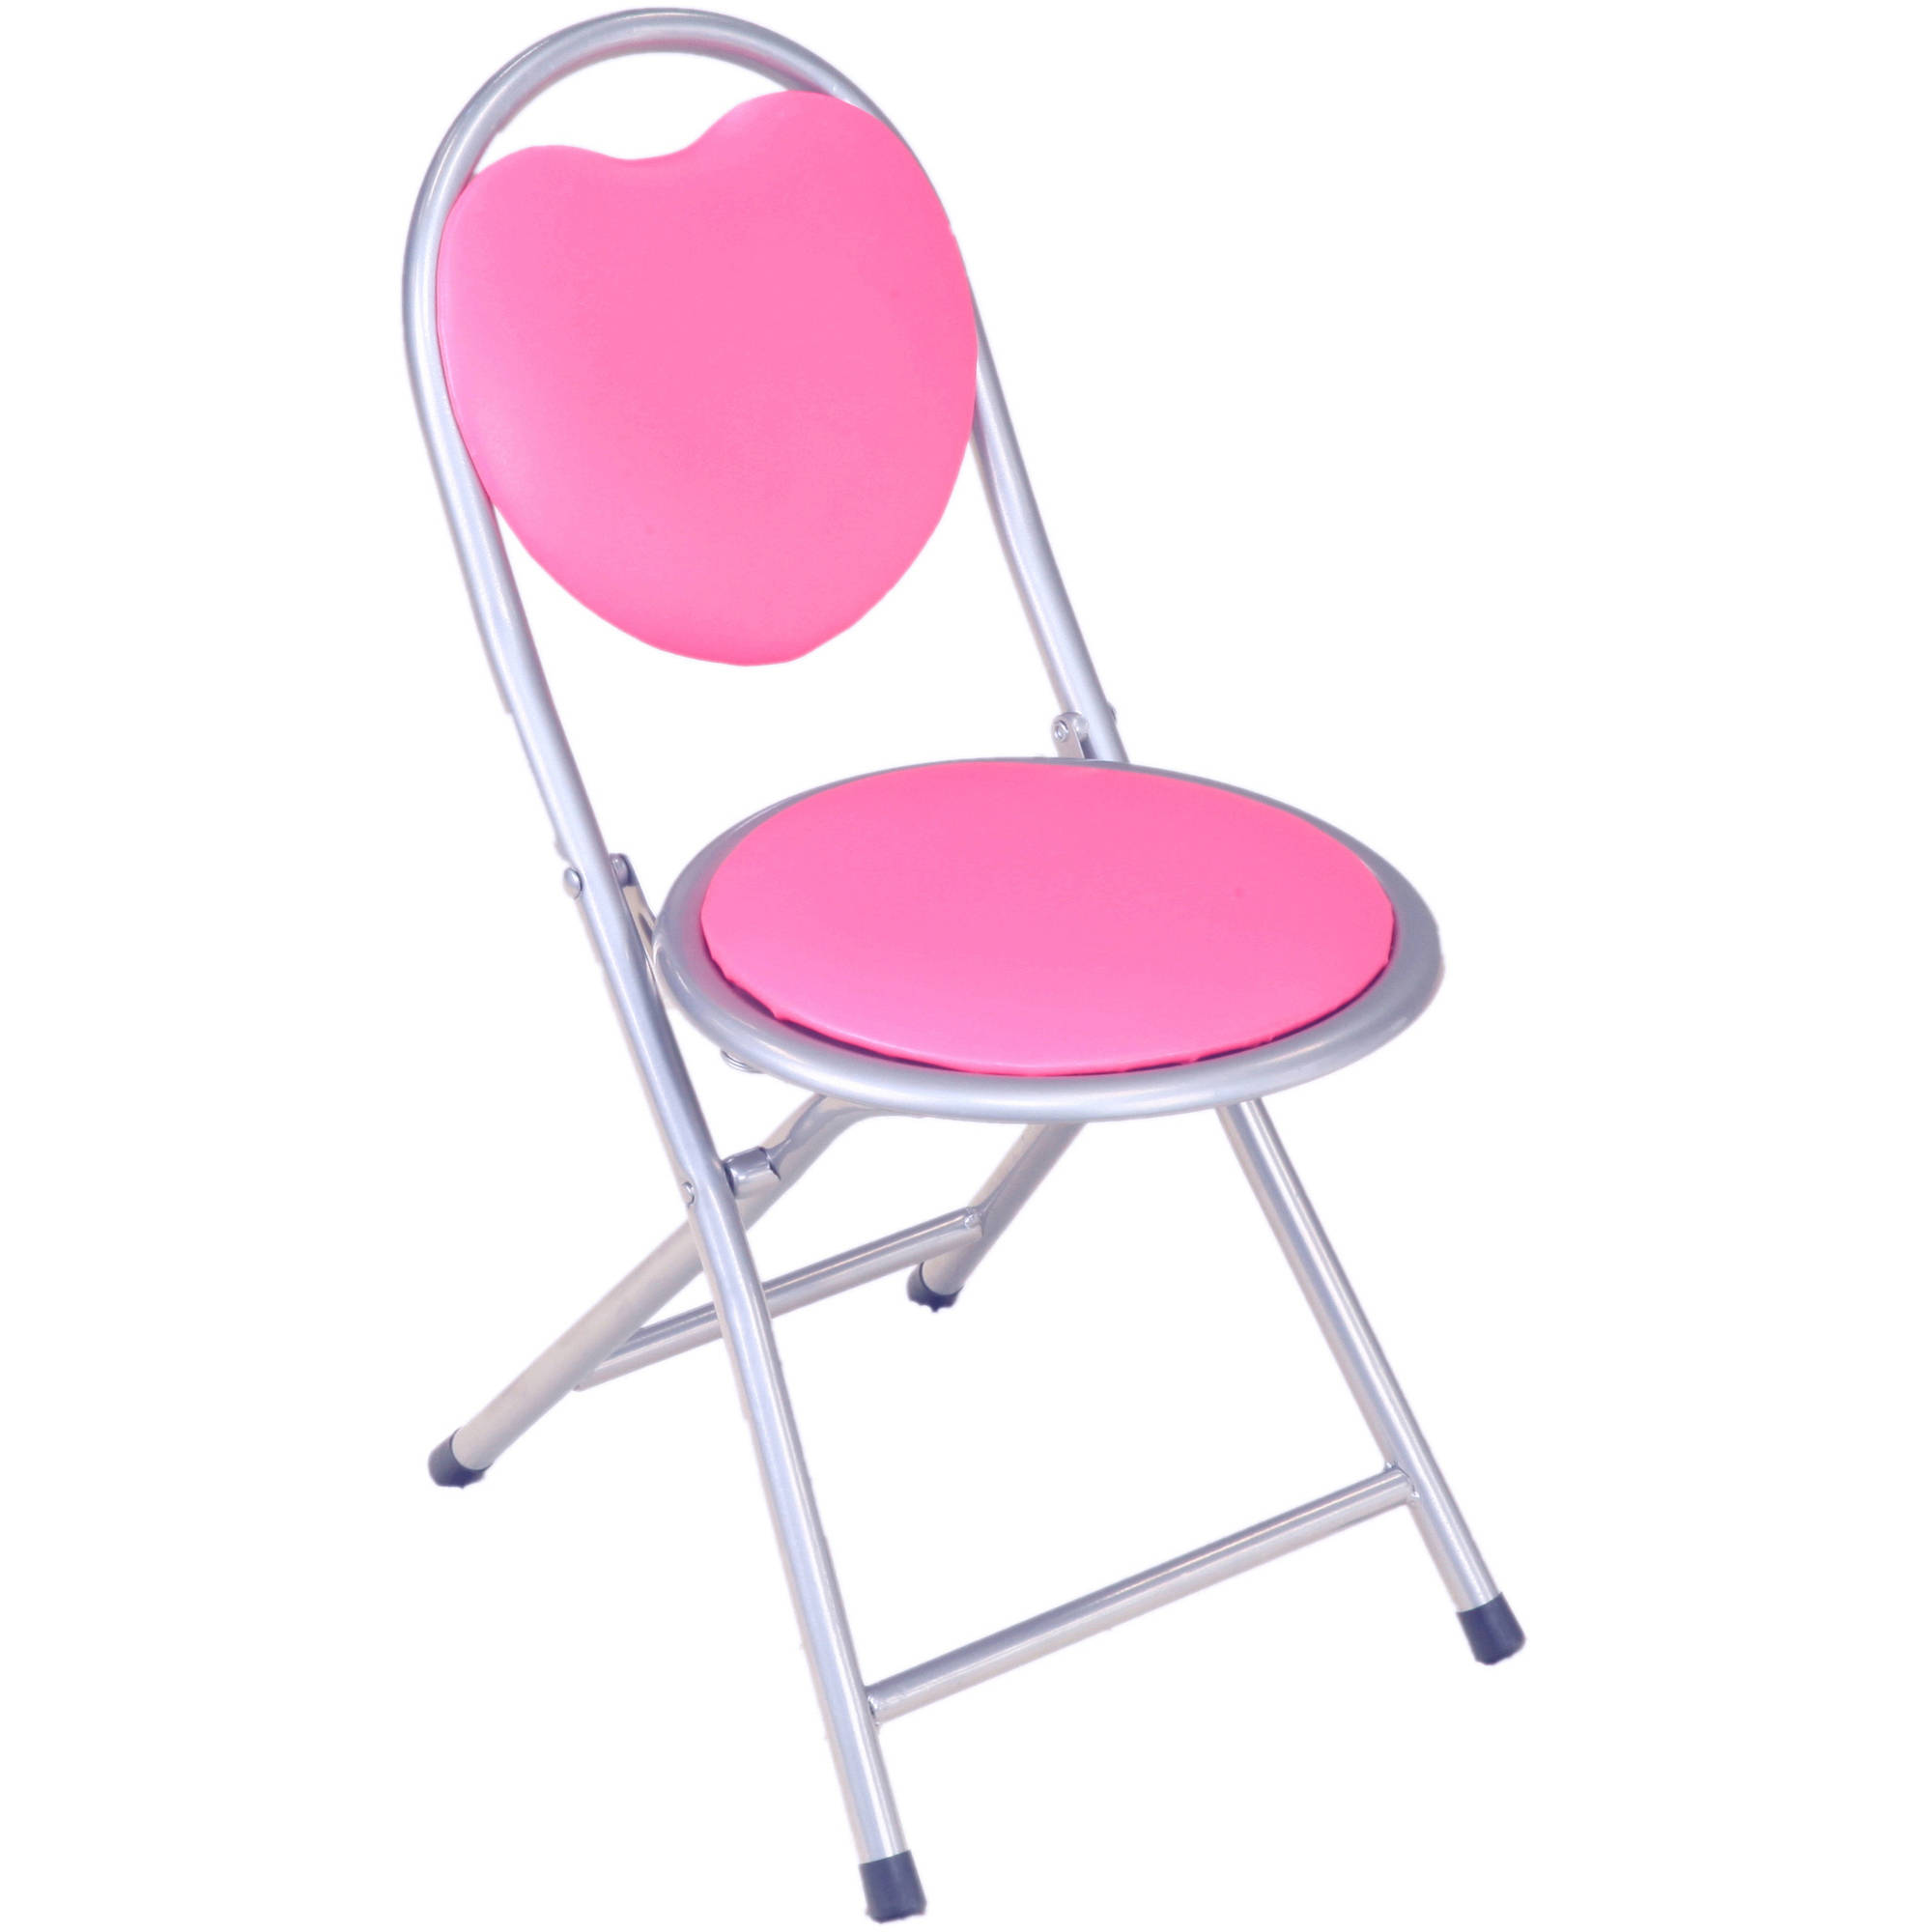 Home Craft Kidu0027s Metal Folding Chair, Multiple Colors   Walmart.com